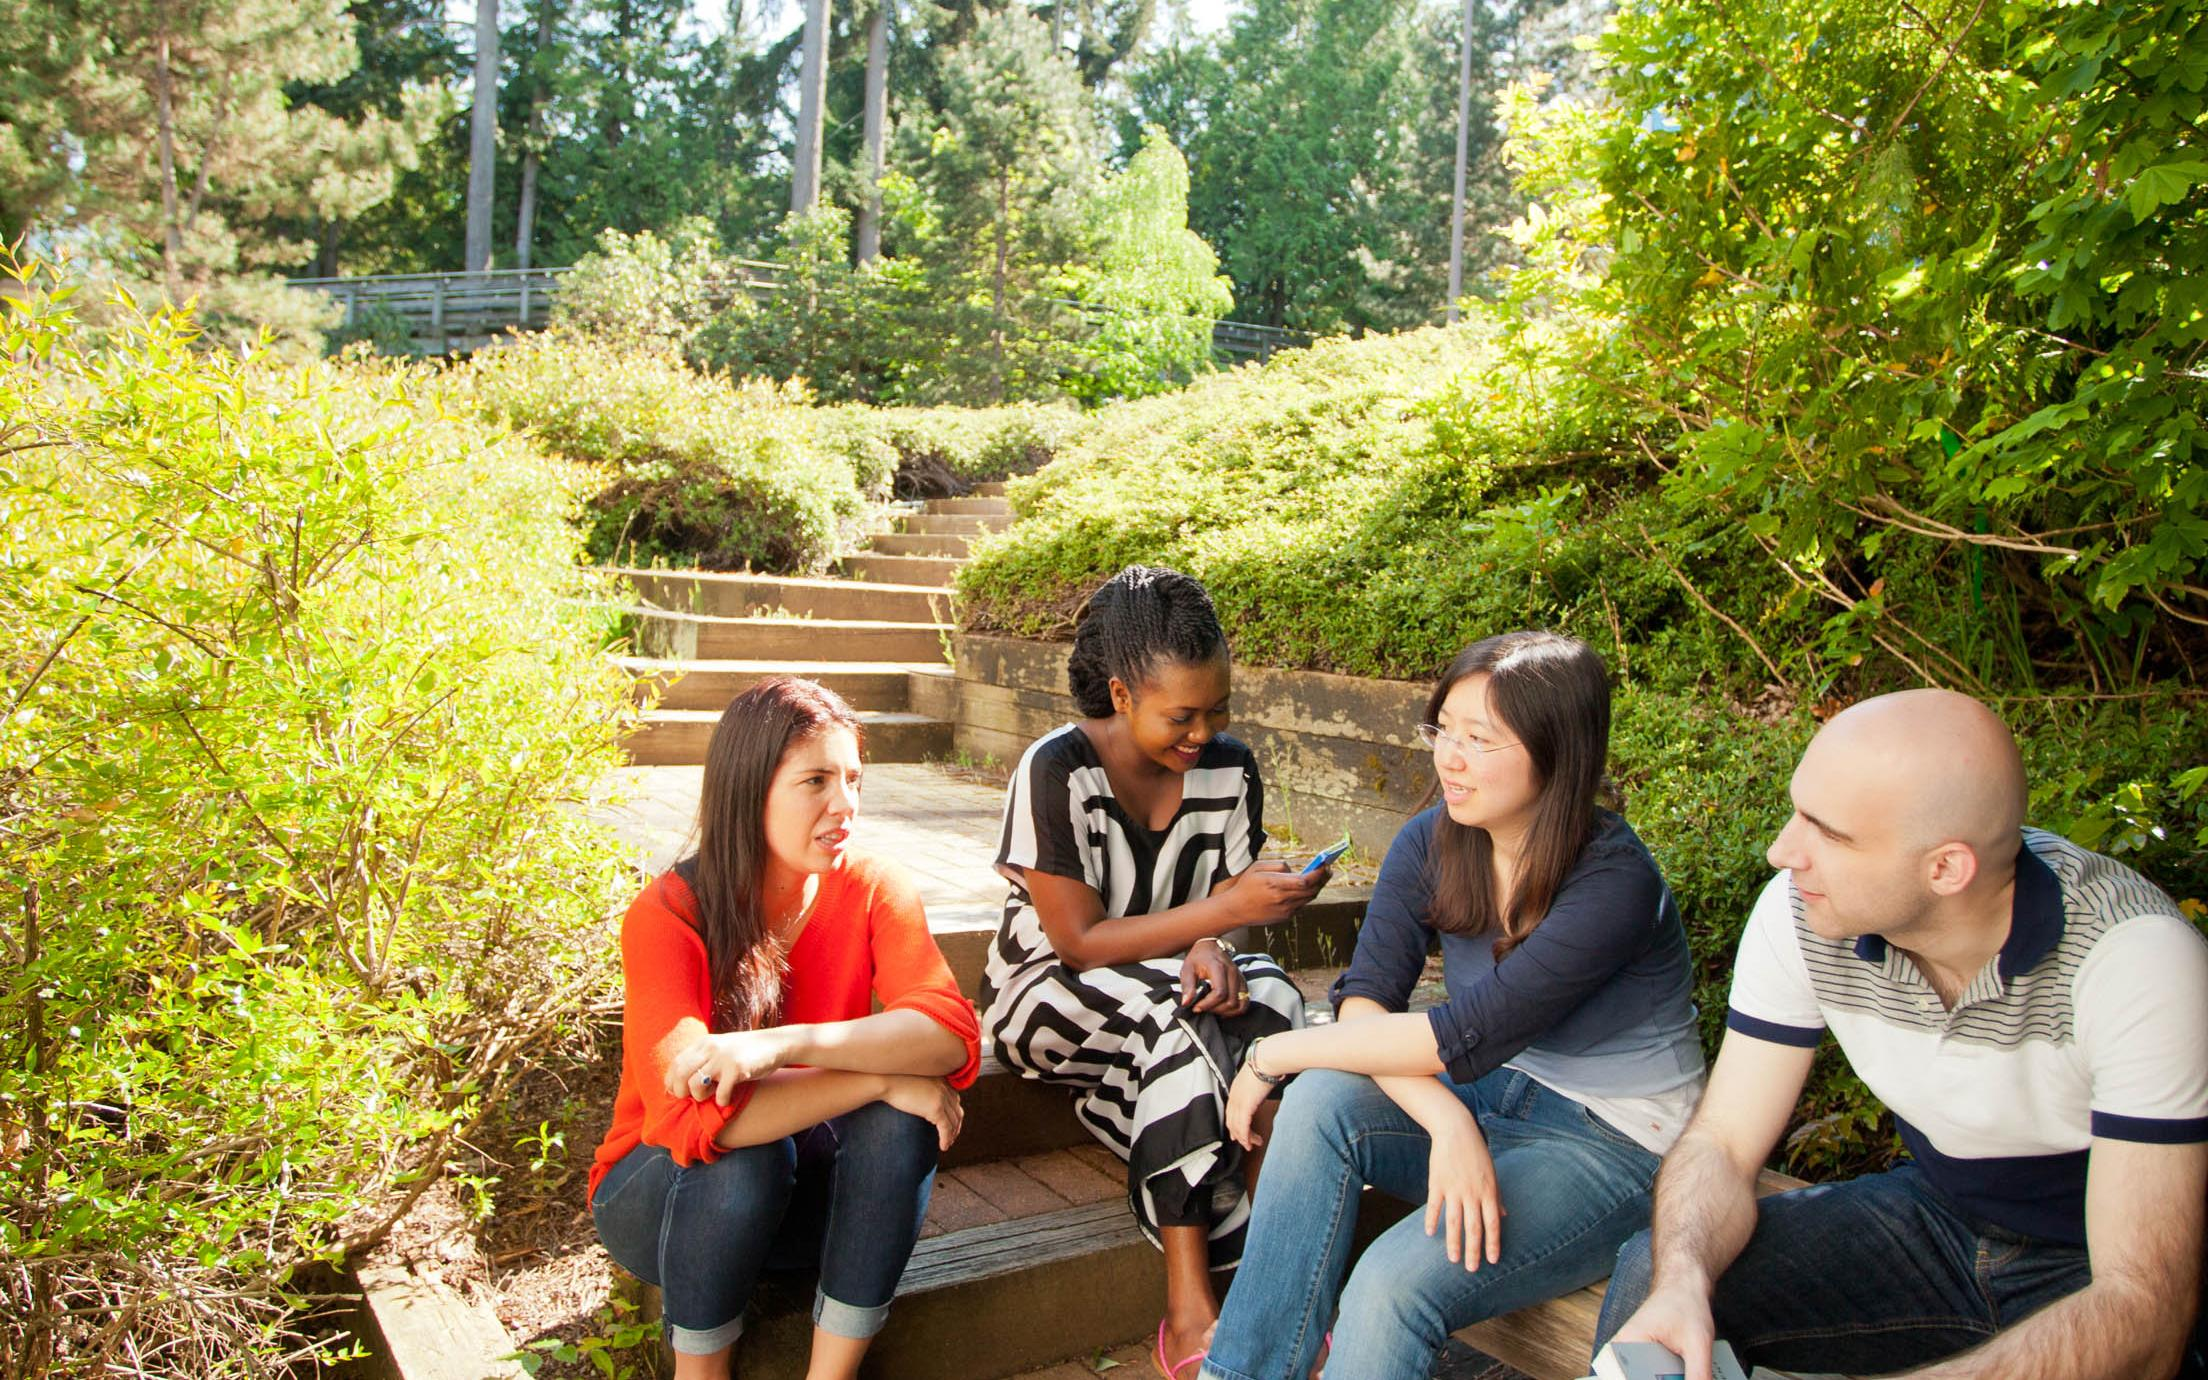 Bachelor of Arts, Major, Minor in Global Studies enjoying the beautiful Nanaimo campus